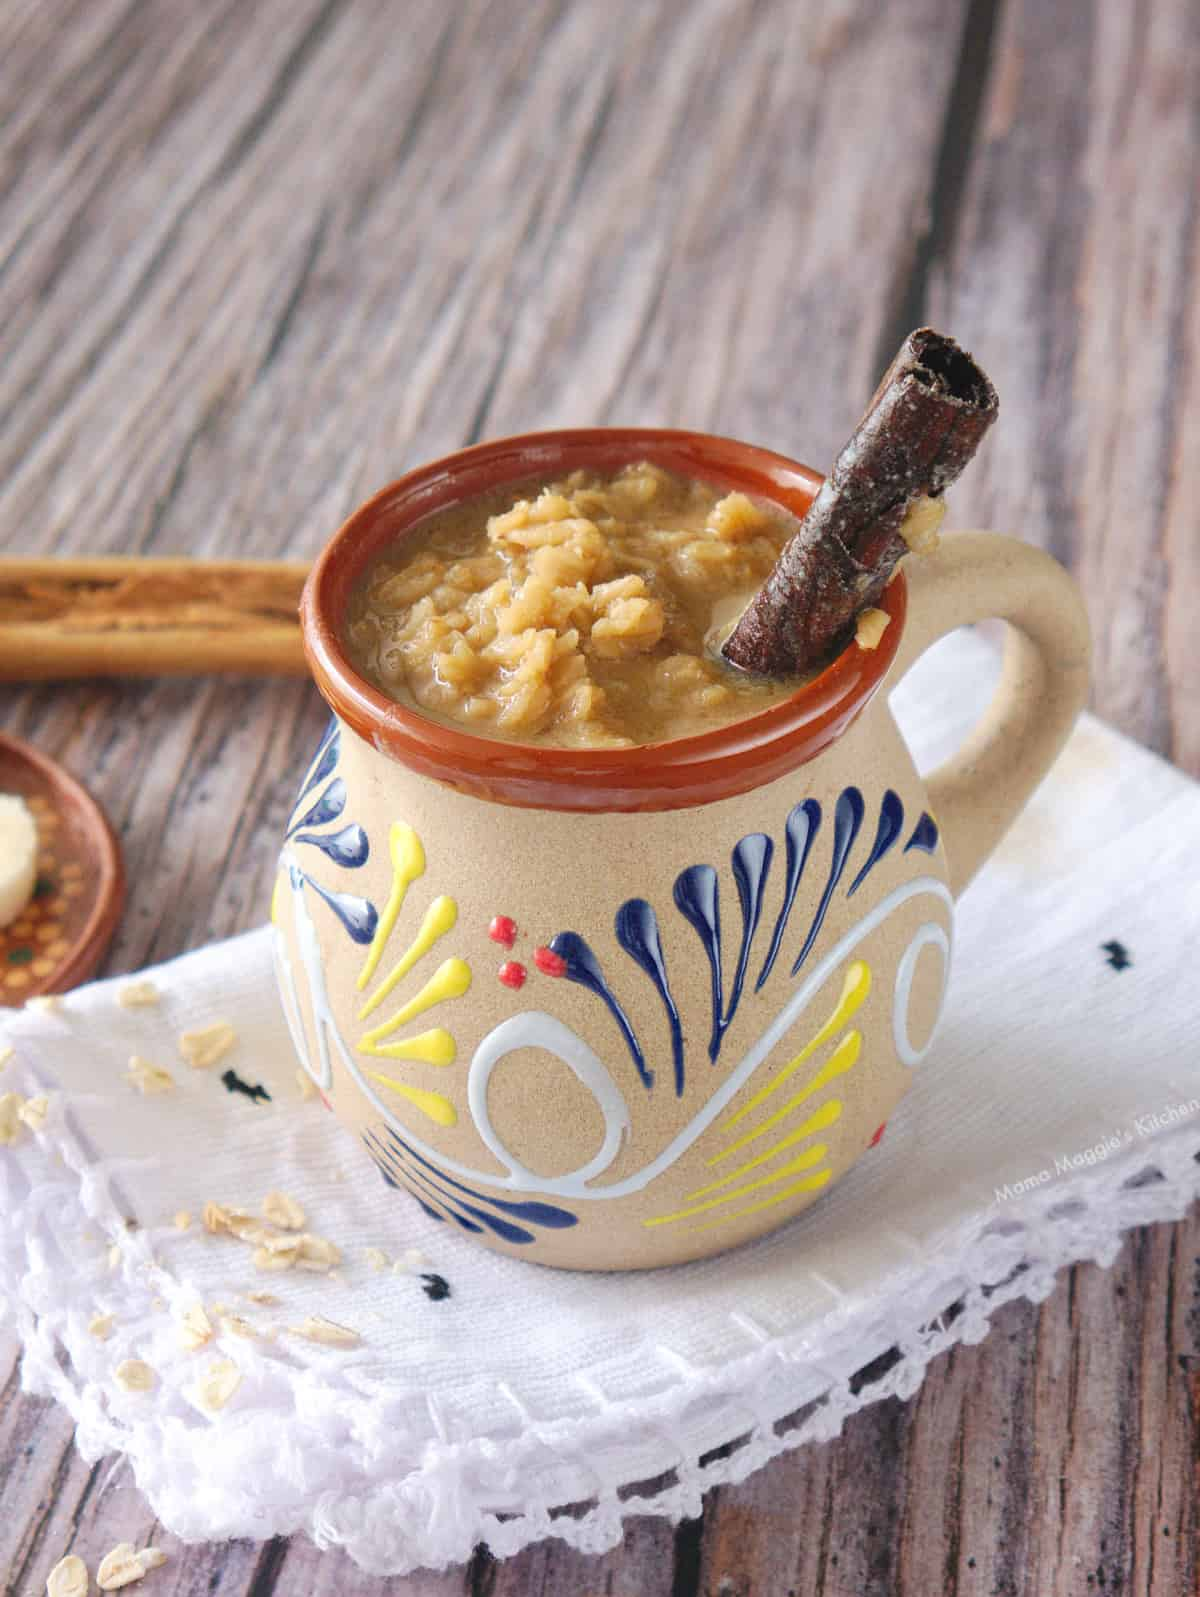 Mexican oatmeal served in a decorative Mexican clay cup.